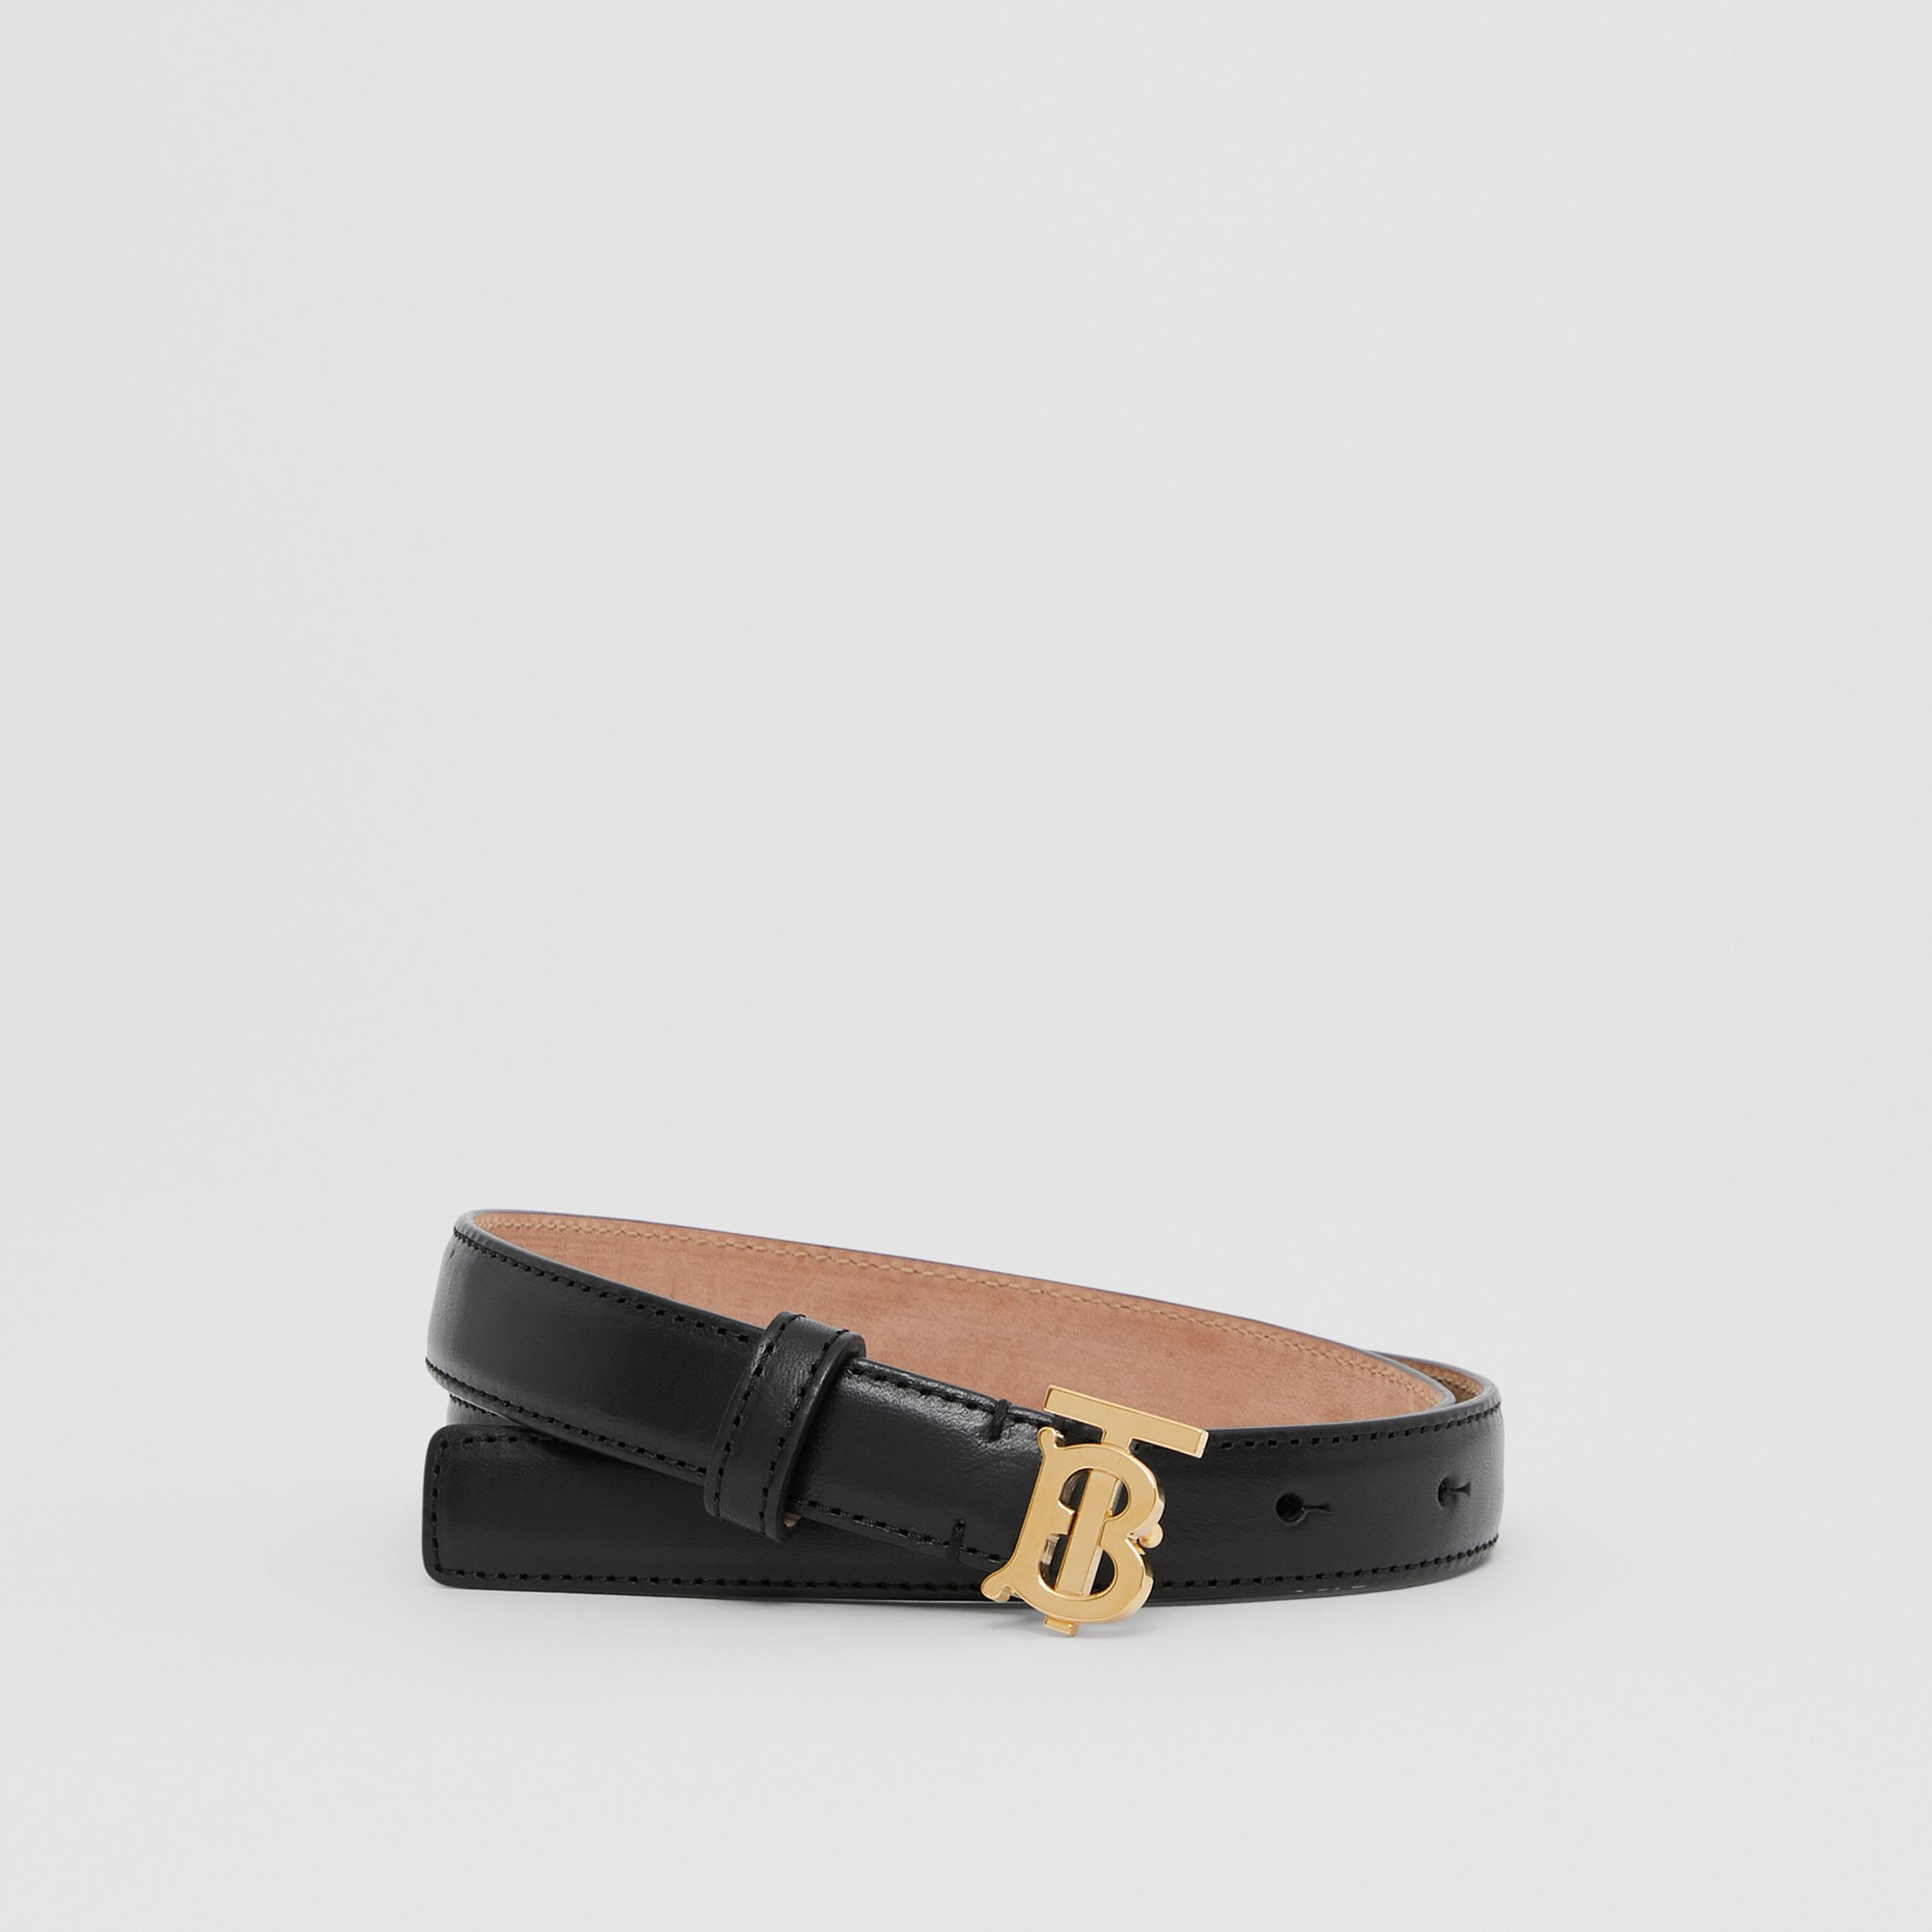 Monogram Motif Leather Belt in Black/light Gold - Women | Burberry United States - 1